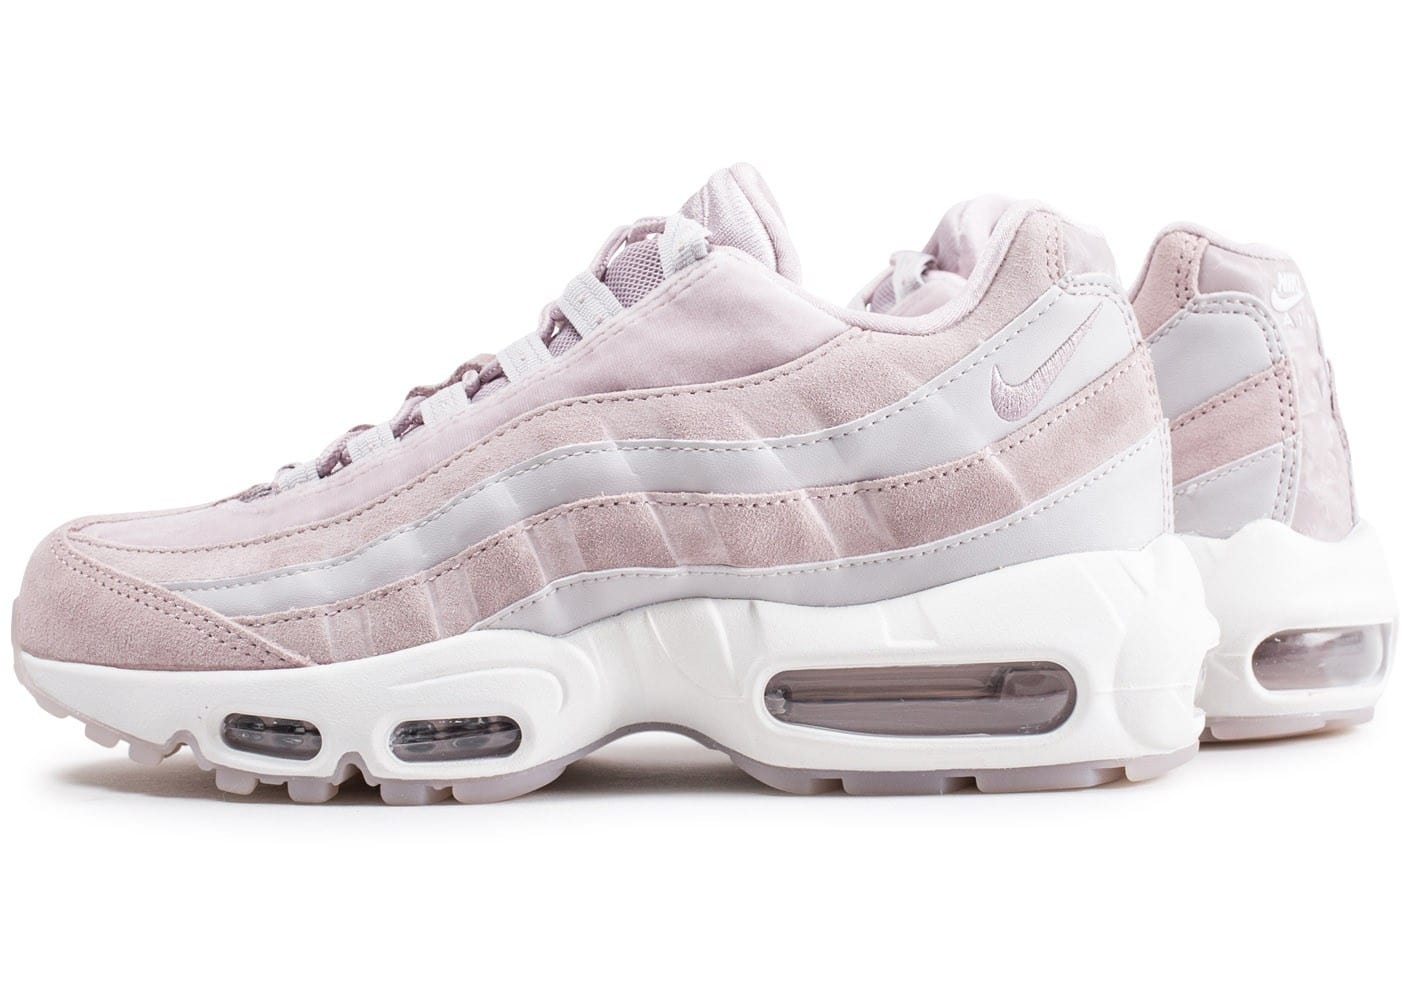 Nike Baskets/Streetwear Air Max 95 Lx Rose Femme